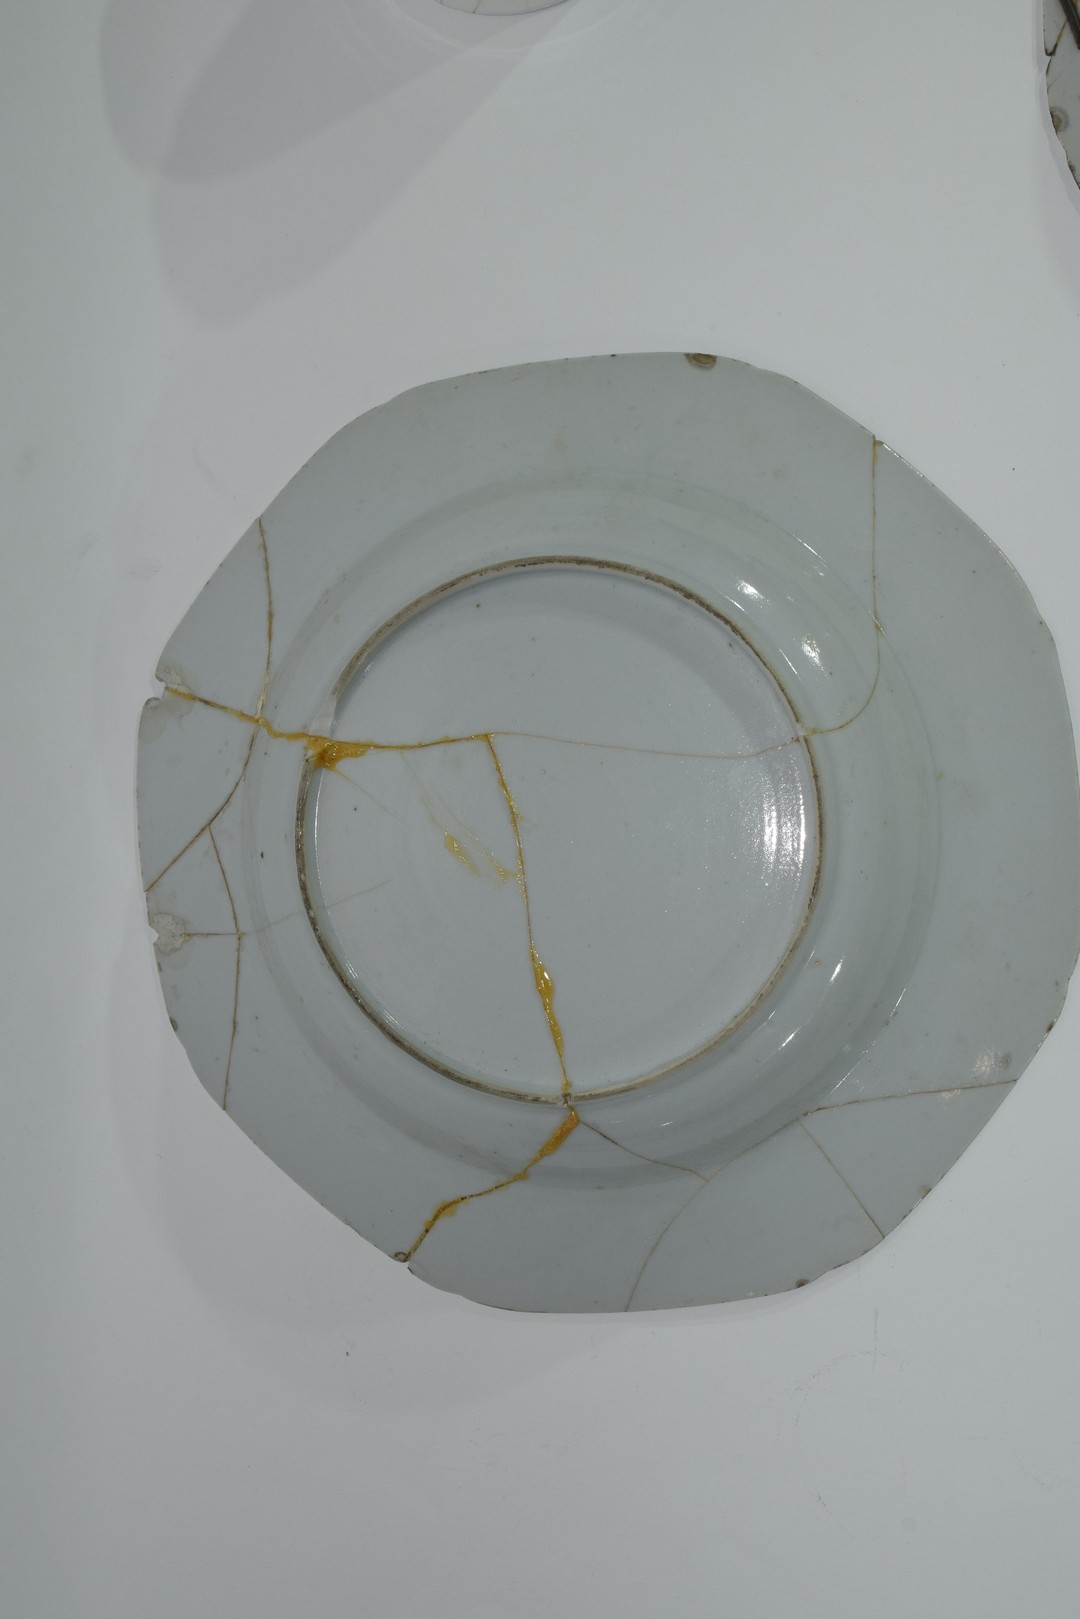 Group of Chinese export porcelain plates - Image 14 of 15